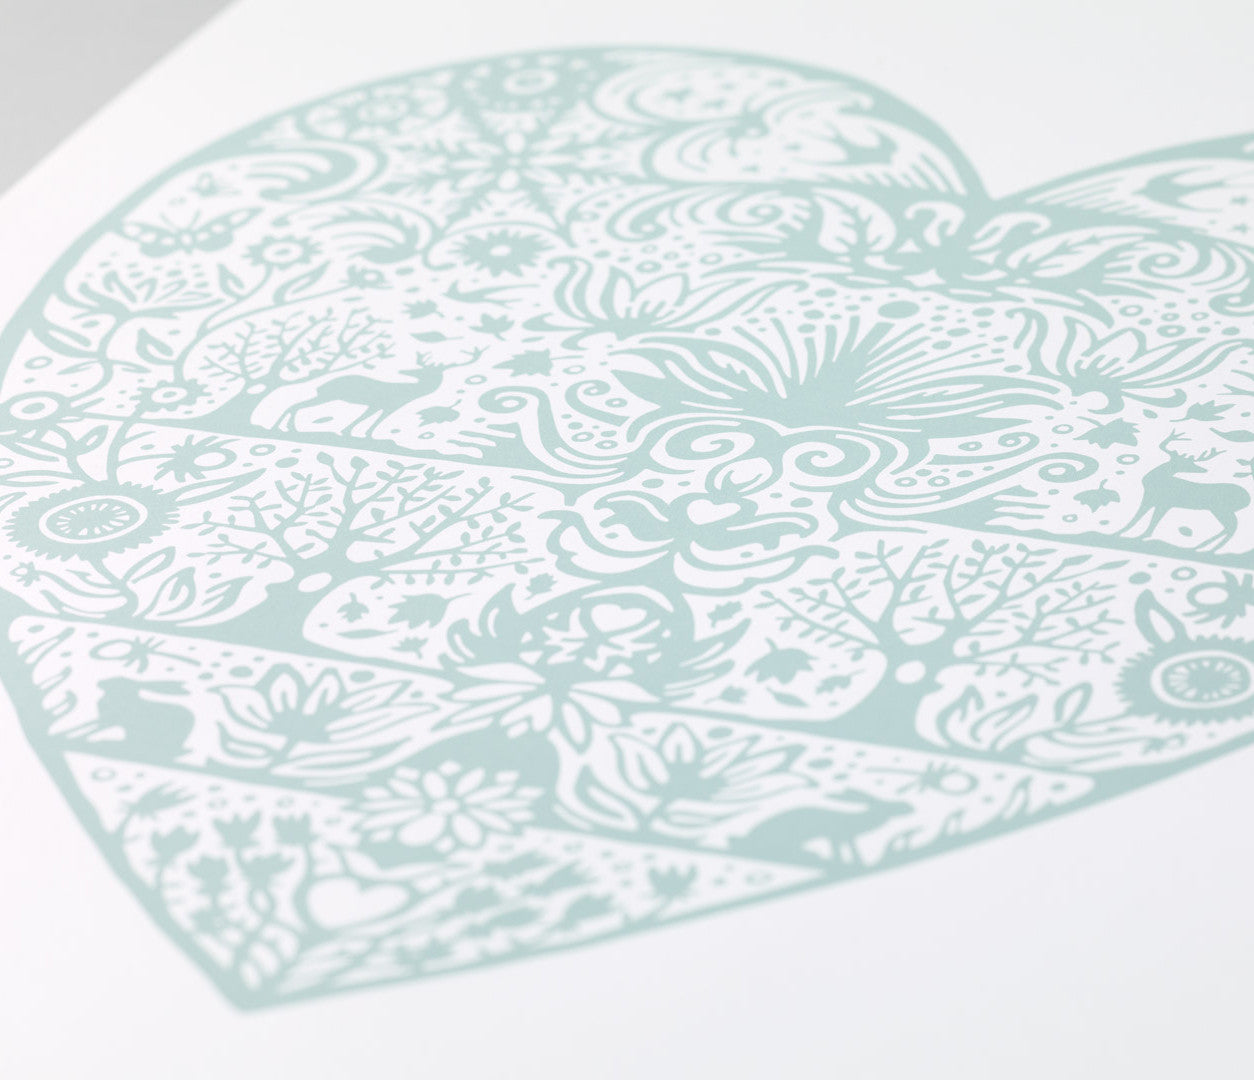 'My Heart' Love Print in Duck Egg Blue